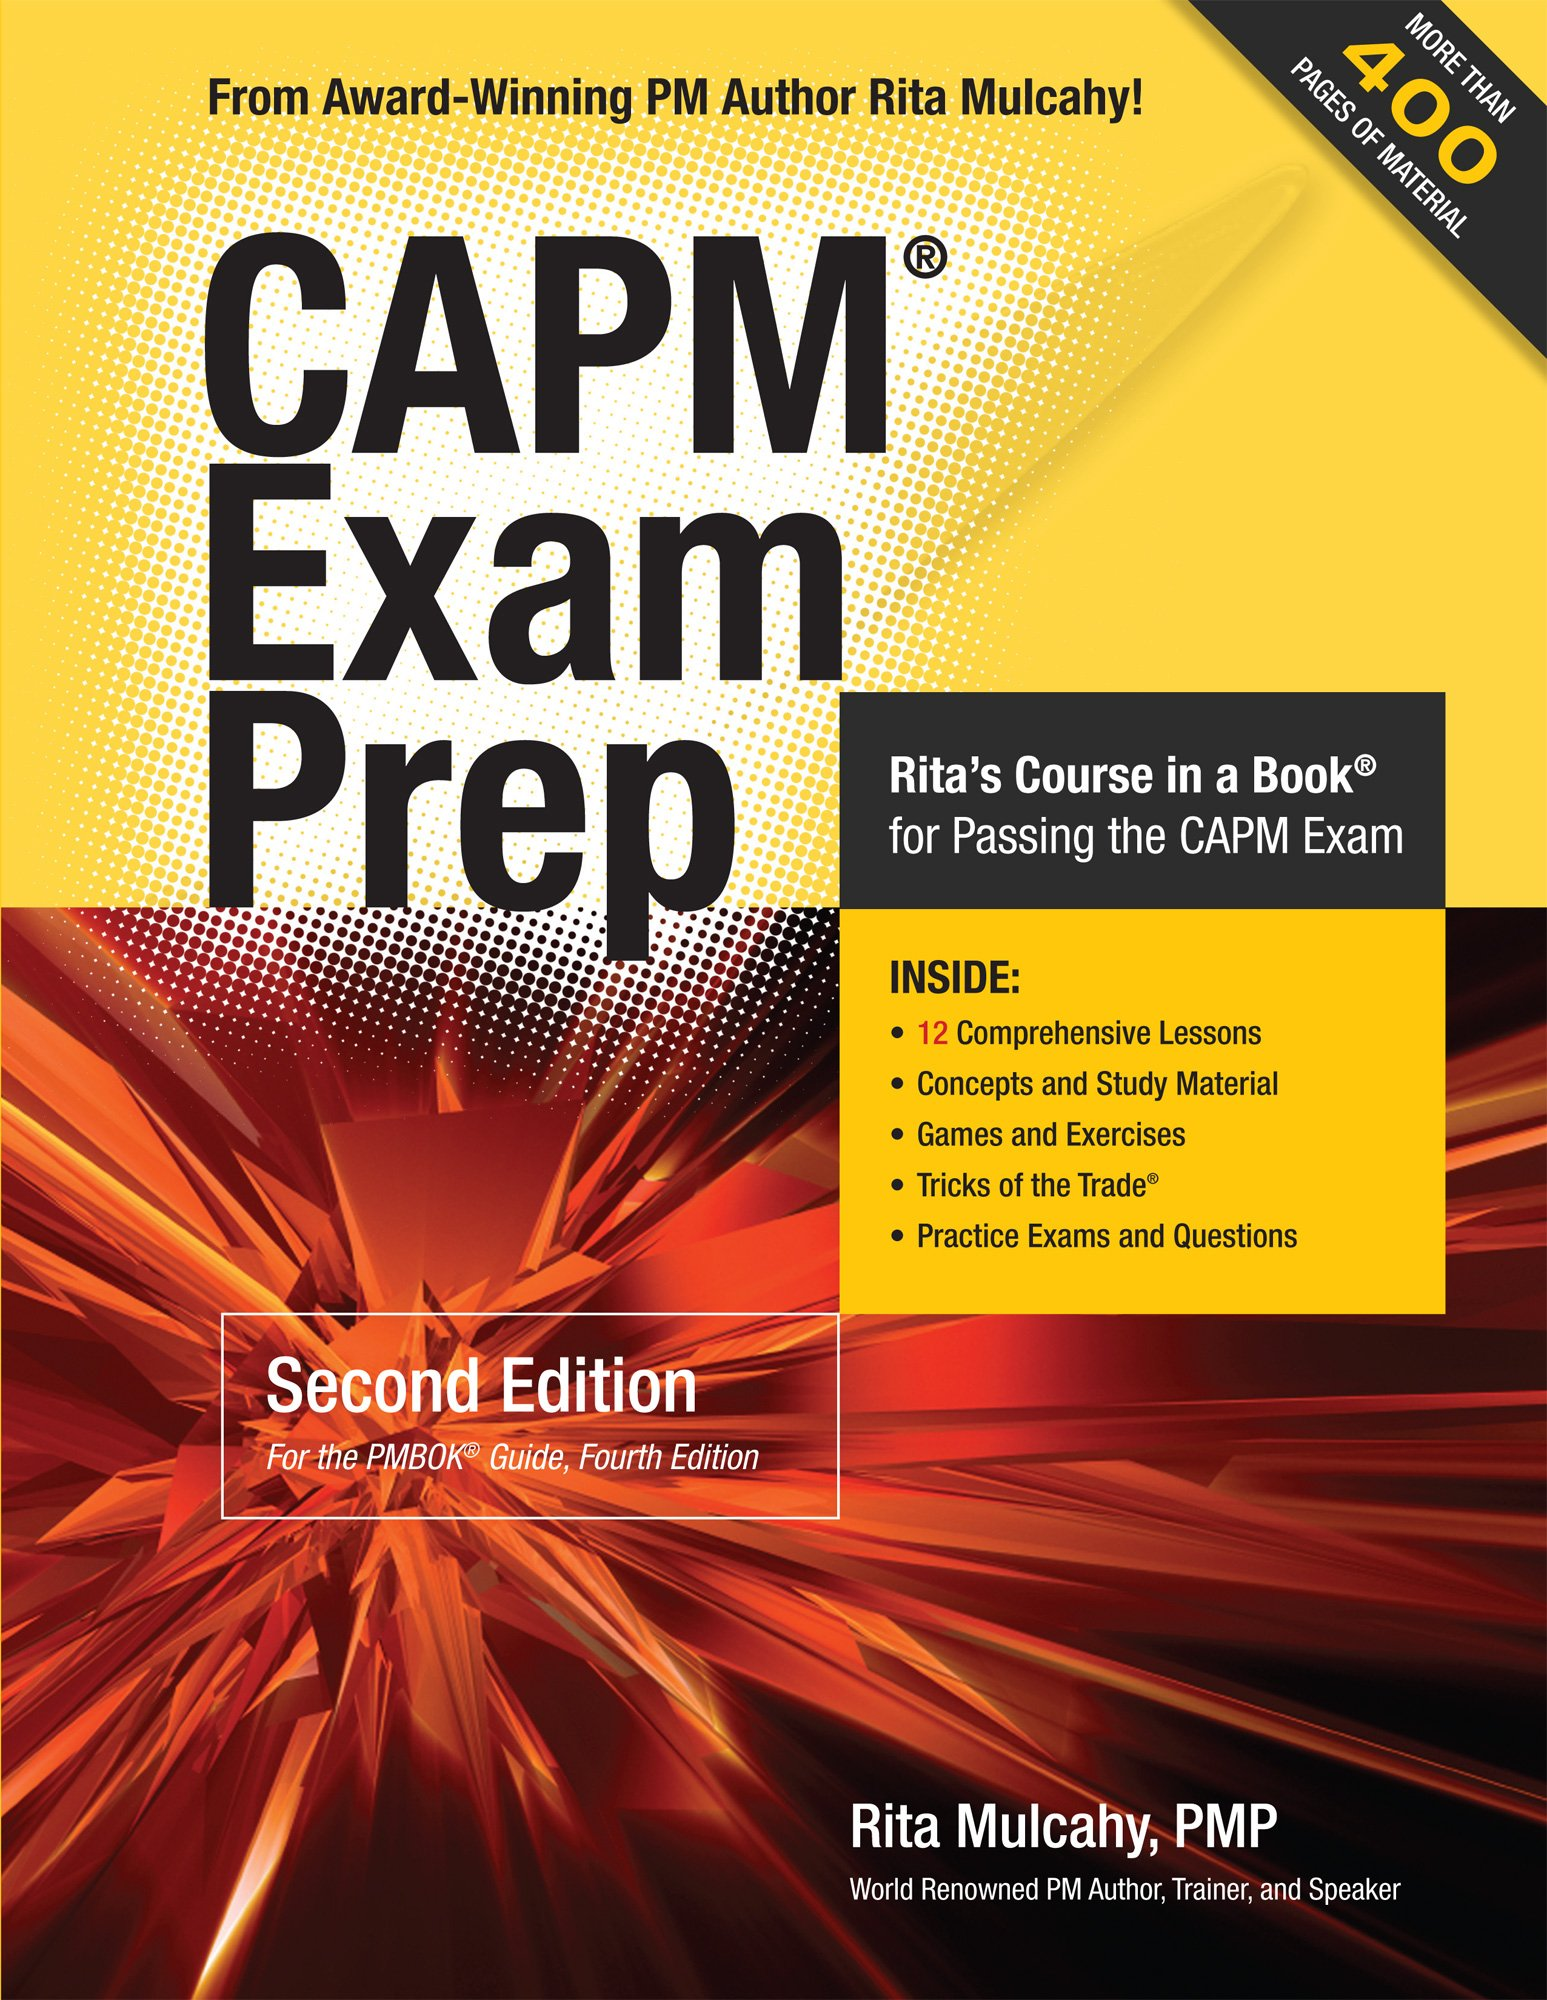 sat exam preparation books pdf